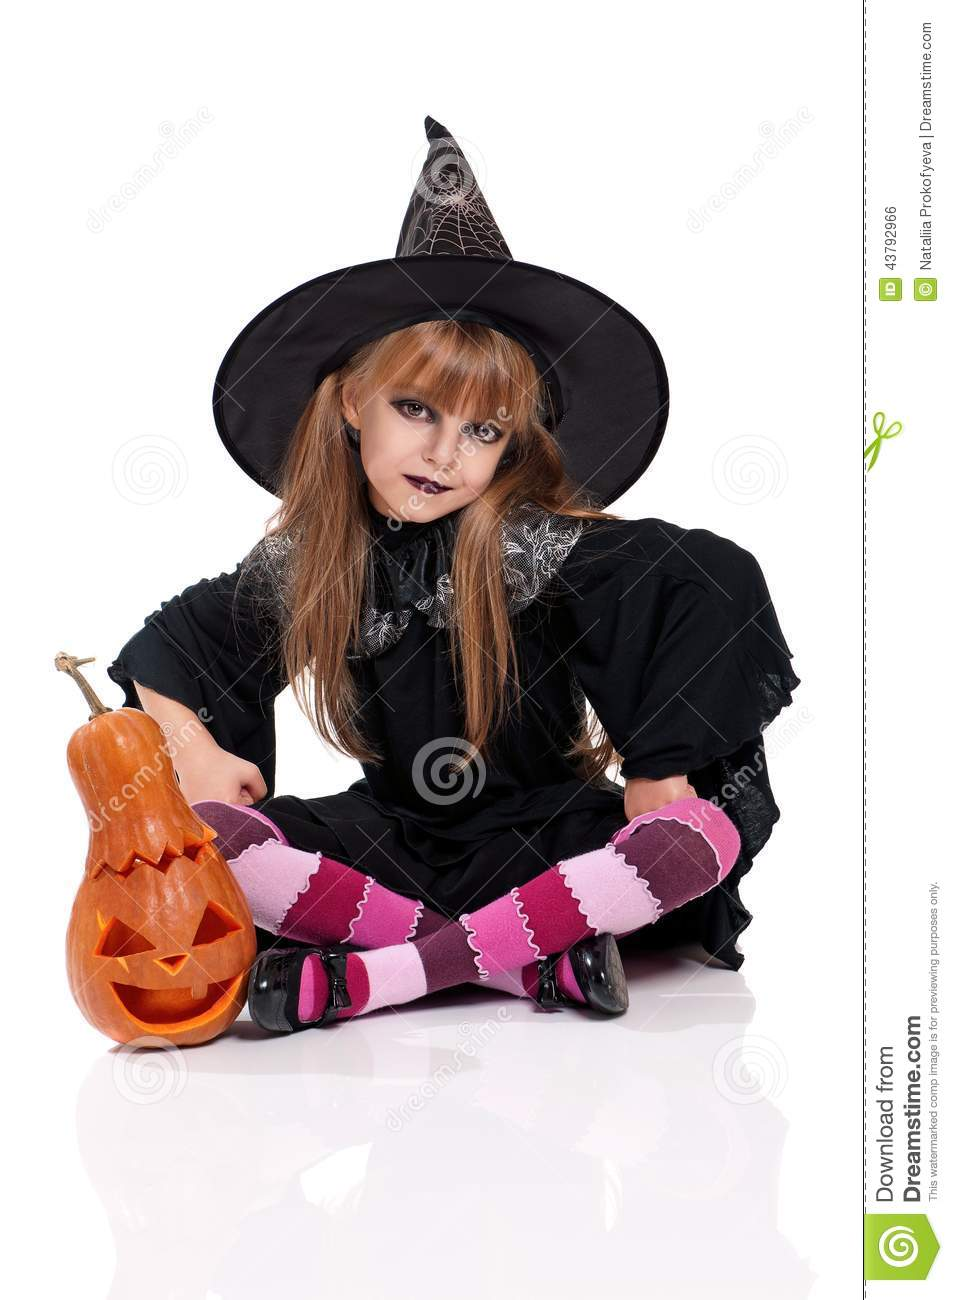 Little Girl In Halloween Costume Stock Photo - Image: 43792966